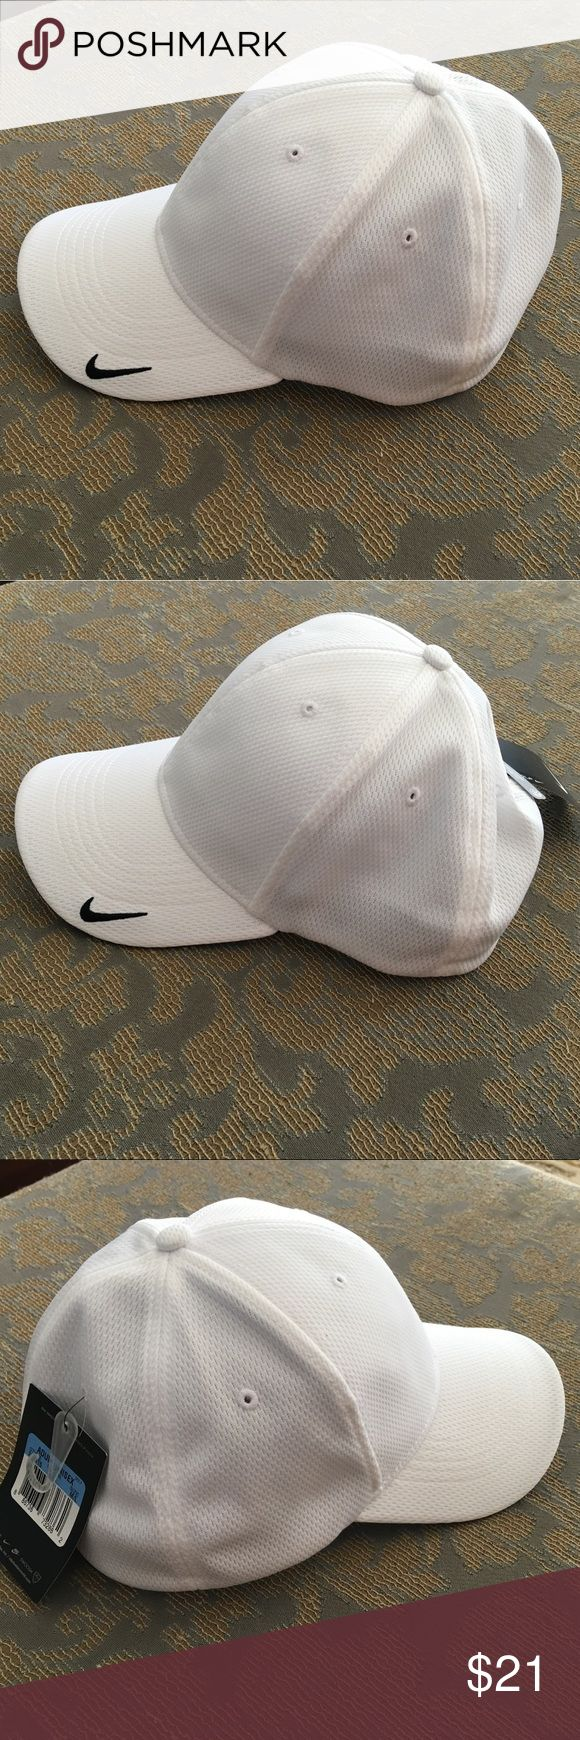 NWT Nike Golf White Dri-Fit Mesh Flex Cap Hat M/L NWT Nike Golf White Dri-Fit Mesh Swoosh Flex Sandwich Cap Size M/L. This moisture wicking fitted hat has a structured mid-profile design. The Swoosh Flex sweatband ensures an exceptional fit. The contrast Swoosh design trademark is embroidered on the bill in the same color as the trim. See pictures for sizing chart. Made of 100% polyester knit mesh. It was kept in a smoke free home. Nike Accessories Hats